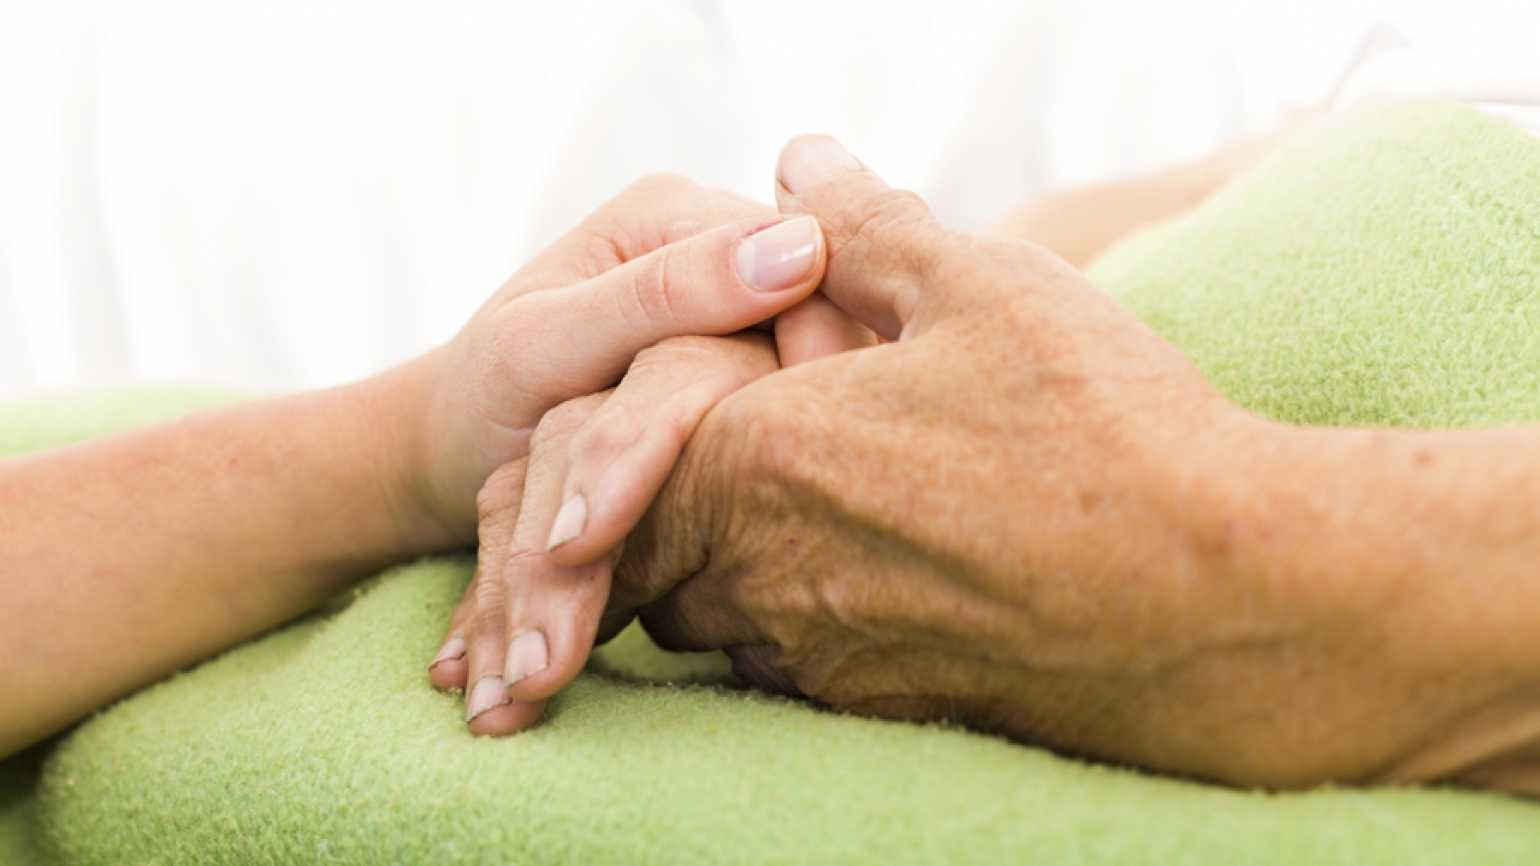 Caring for a Loved One with Late-Stage Dementia